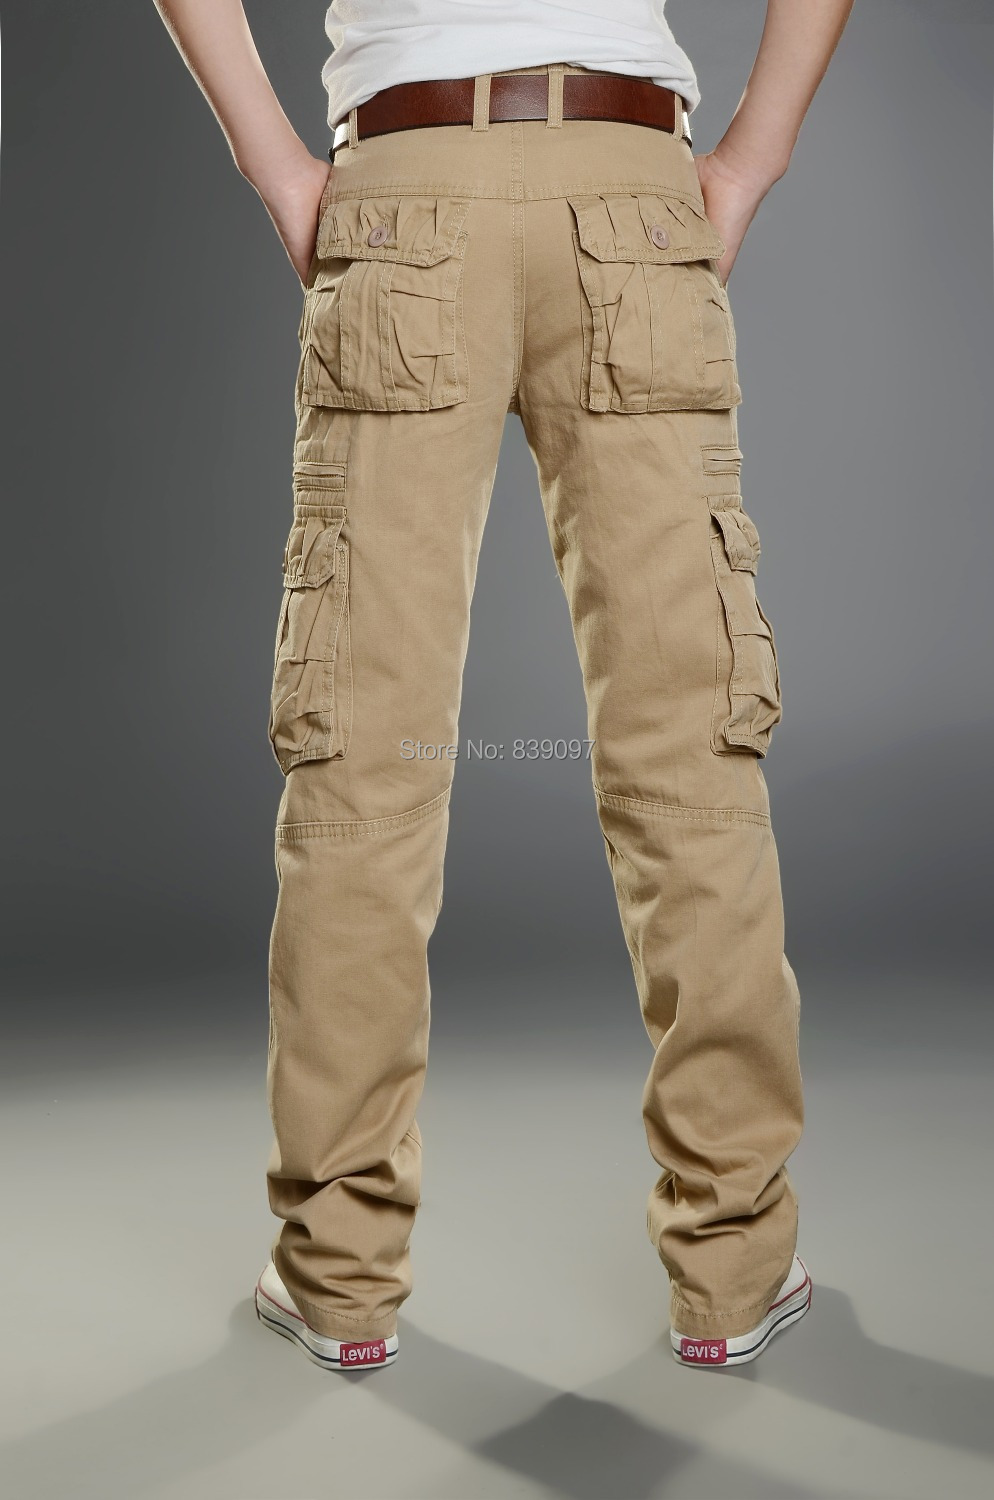 Aliexpress.com : Buy 2014 Mens Fashion Cargo Pants Casual Straight ...